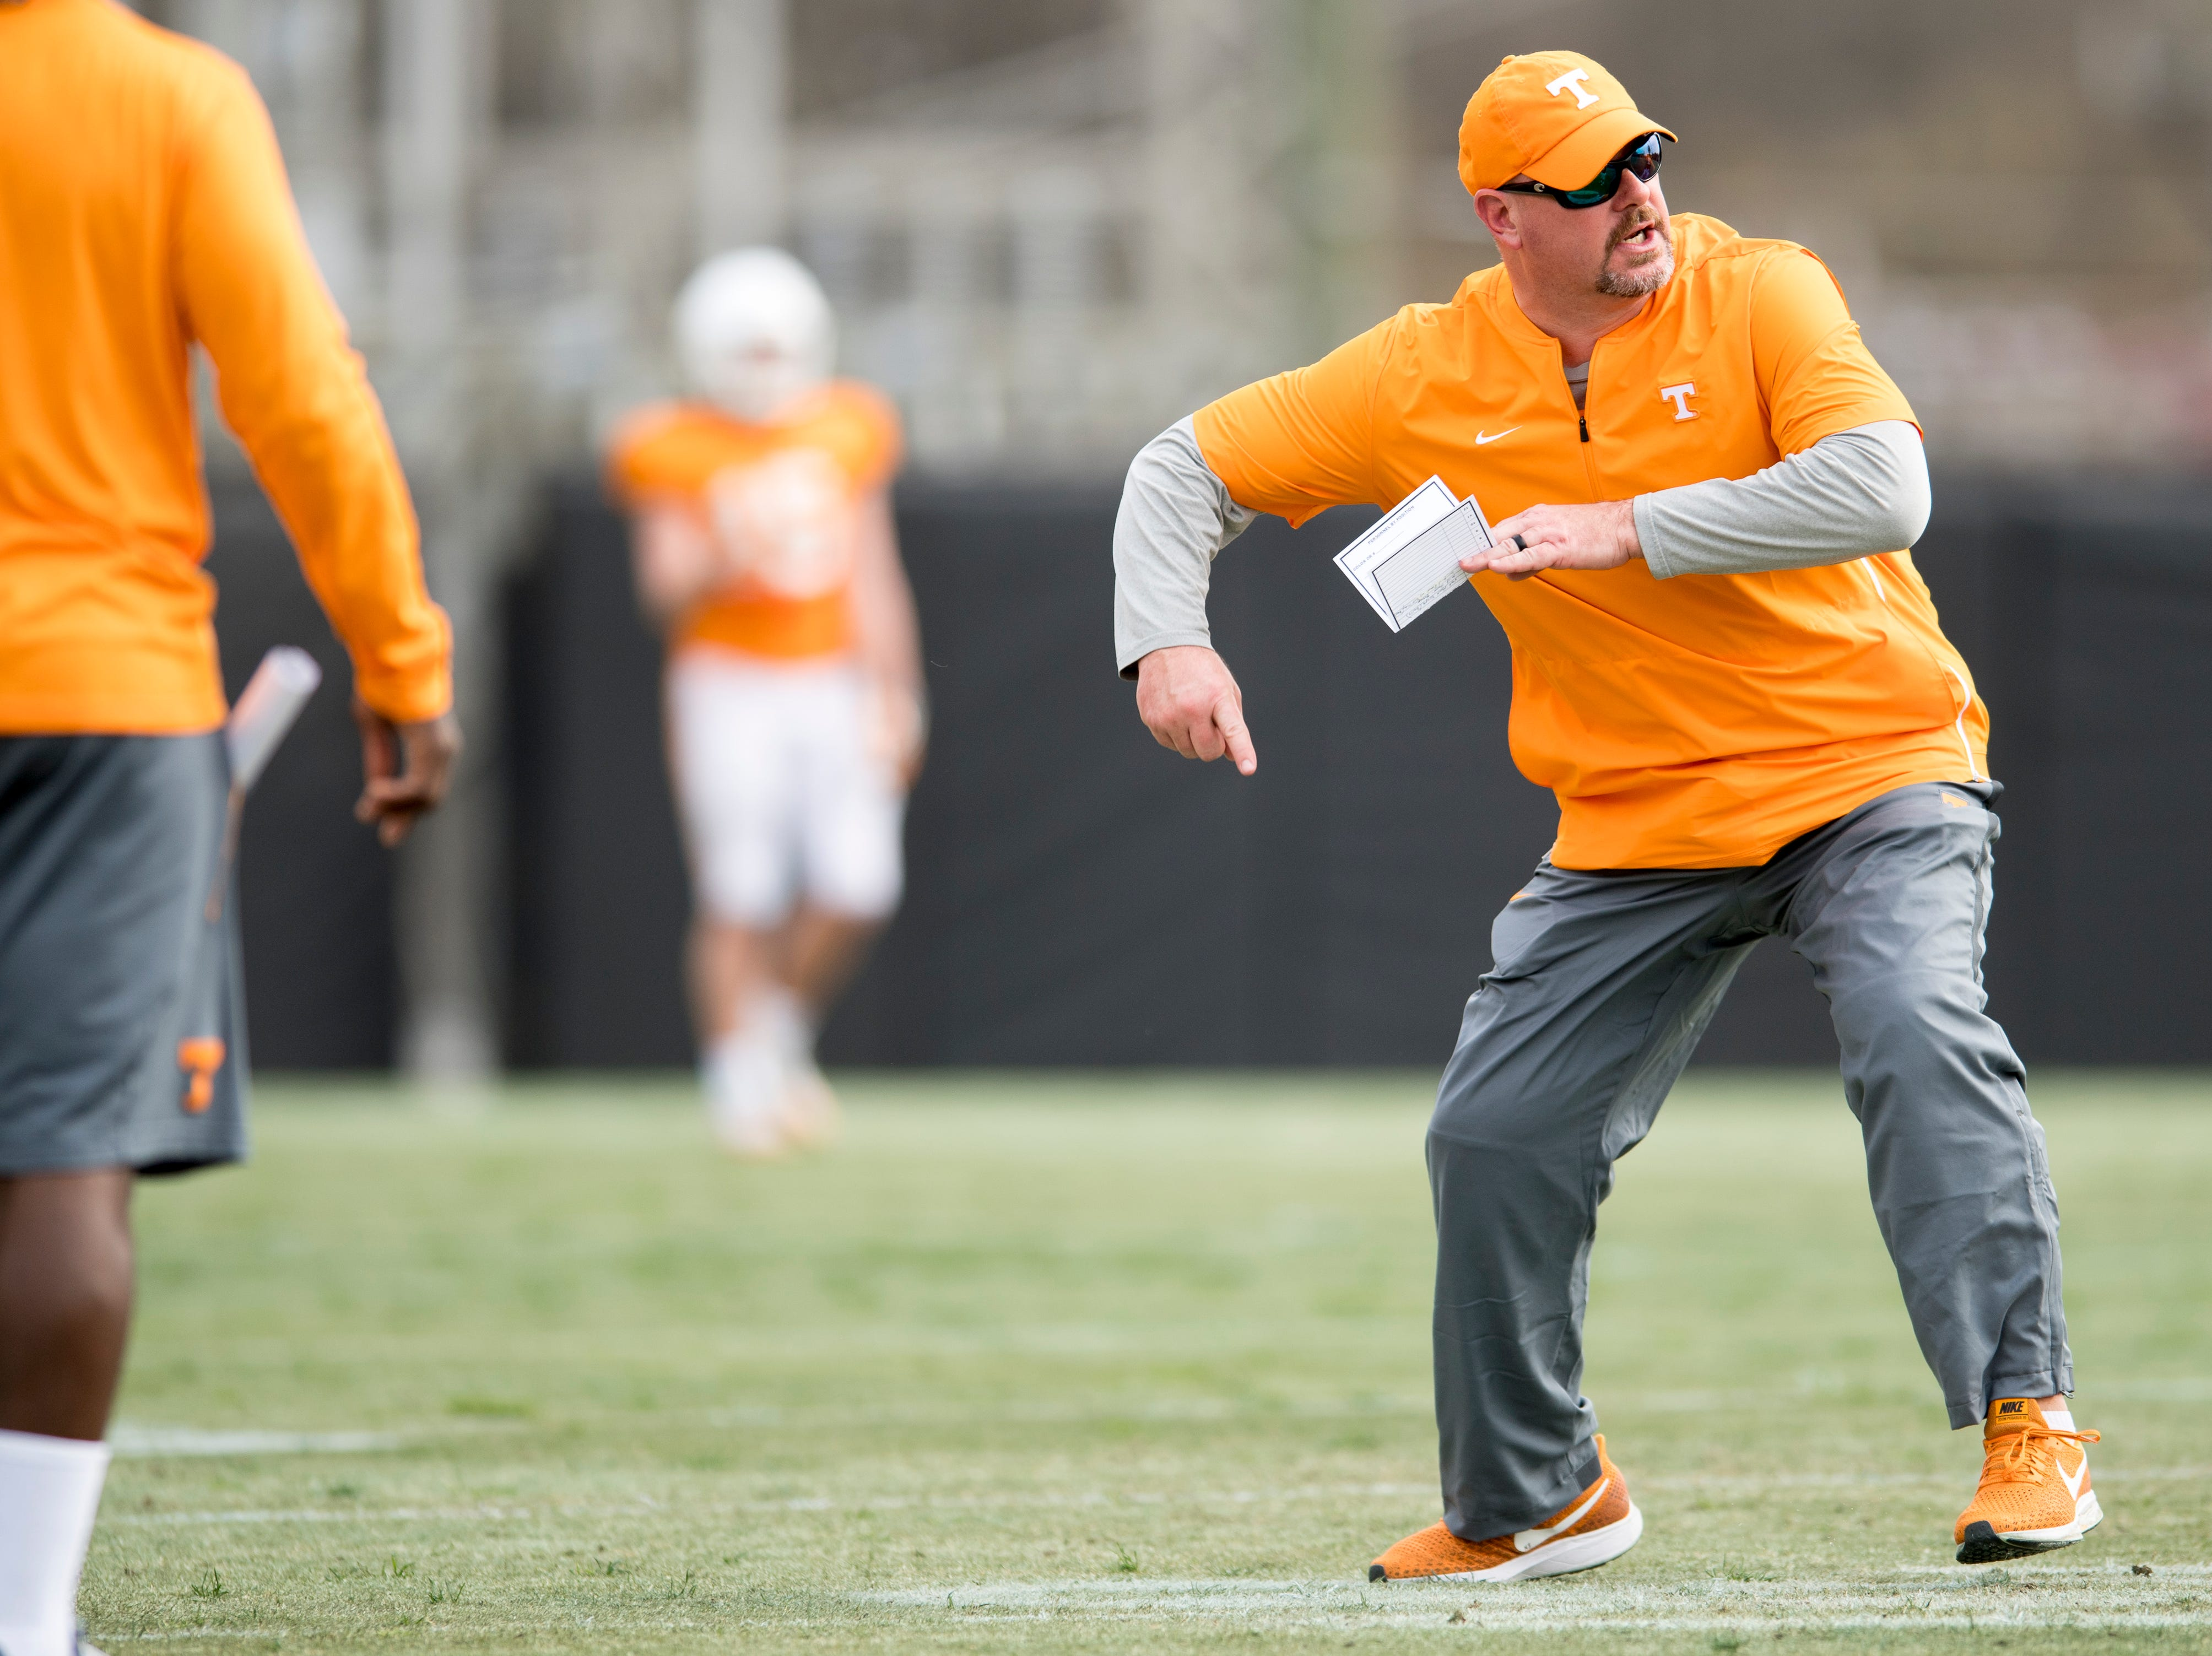 Tennessee offensive line coach Will Friend performs an example of a drill during Tennessee spring football practice at  Haslam Field in Knoxville, Tennessee on Wednesday, March 13, 2019.